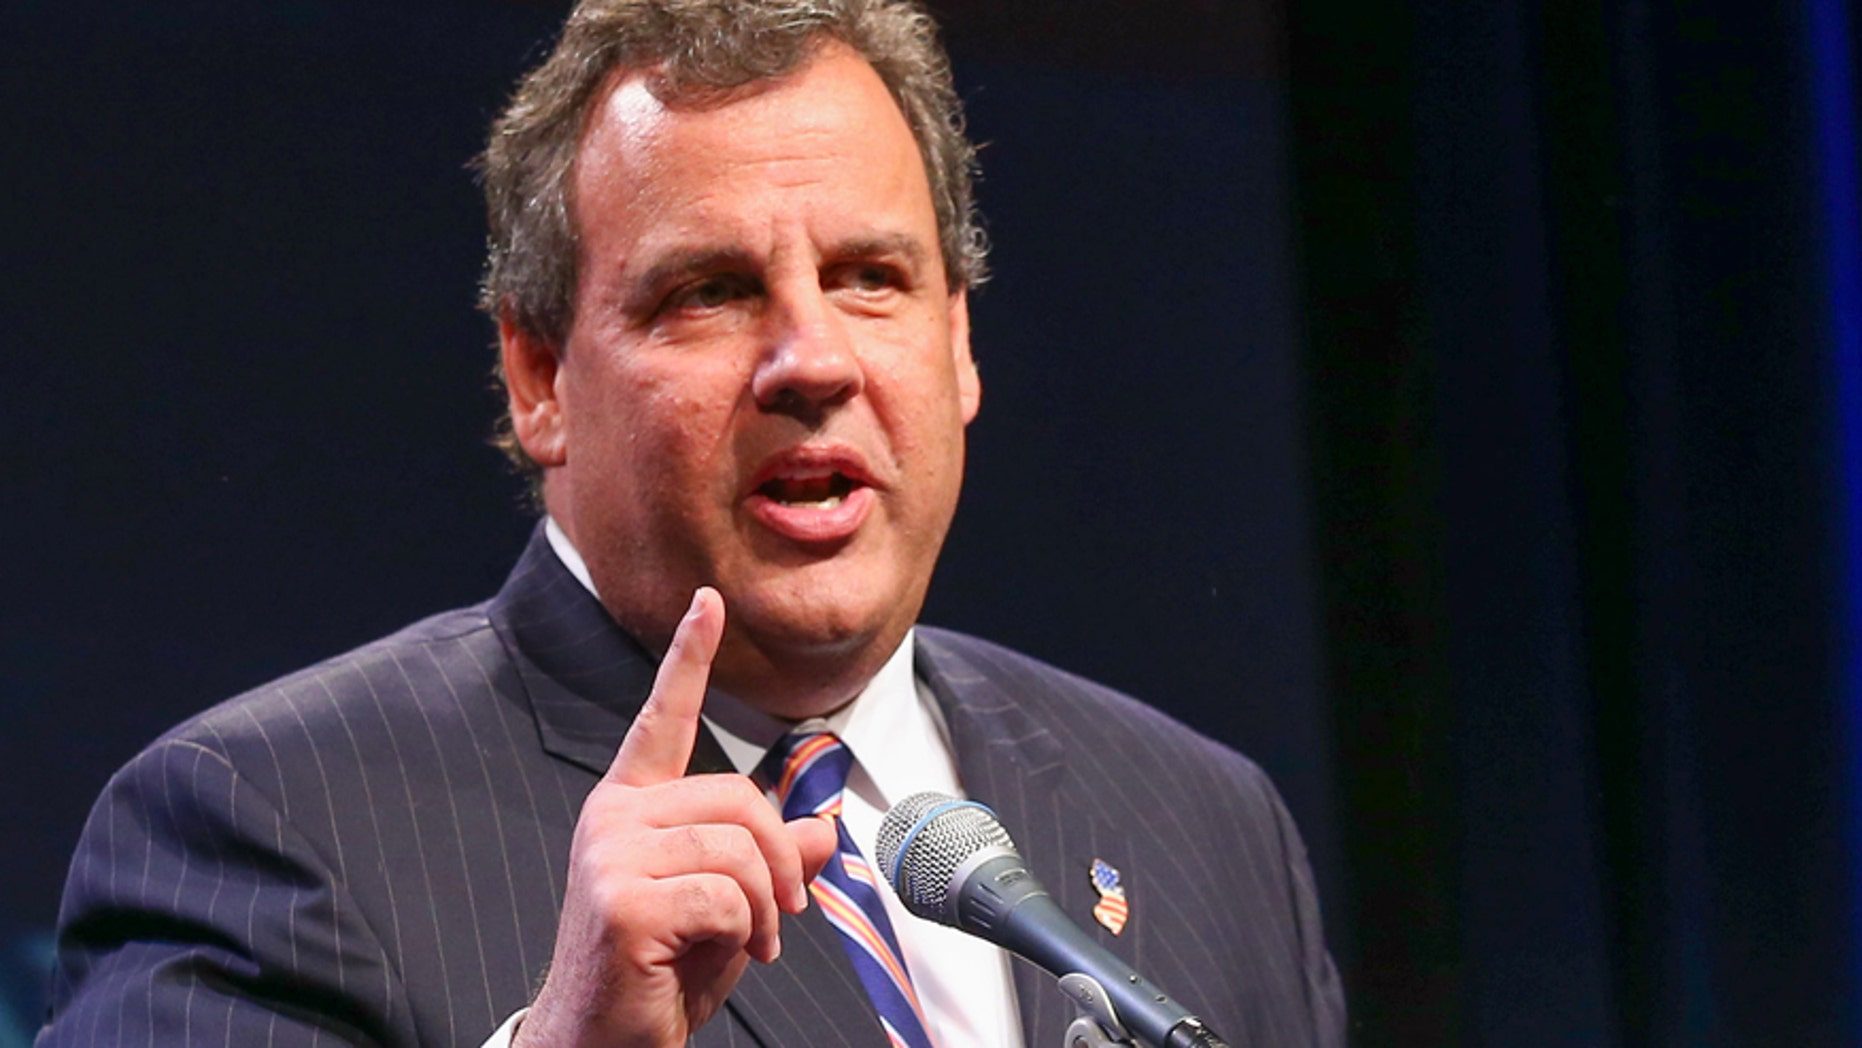 This May 30, 2014 file photo shows New Jersey Gov. Chris Christie dspeaking in Nashville, Tennessee.